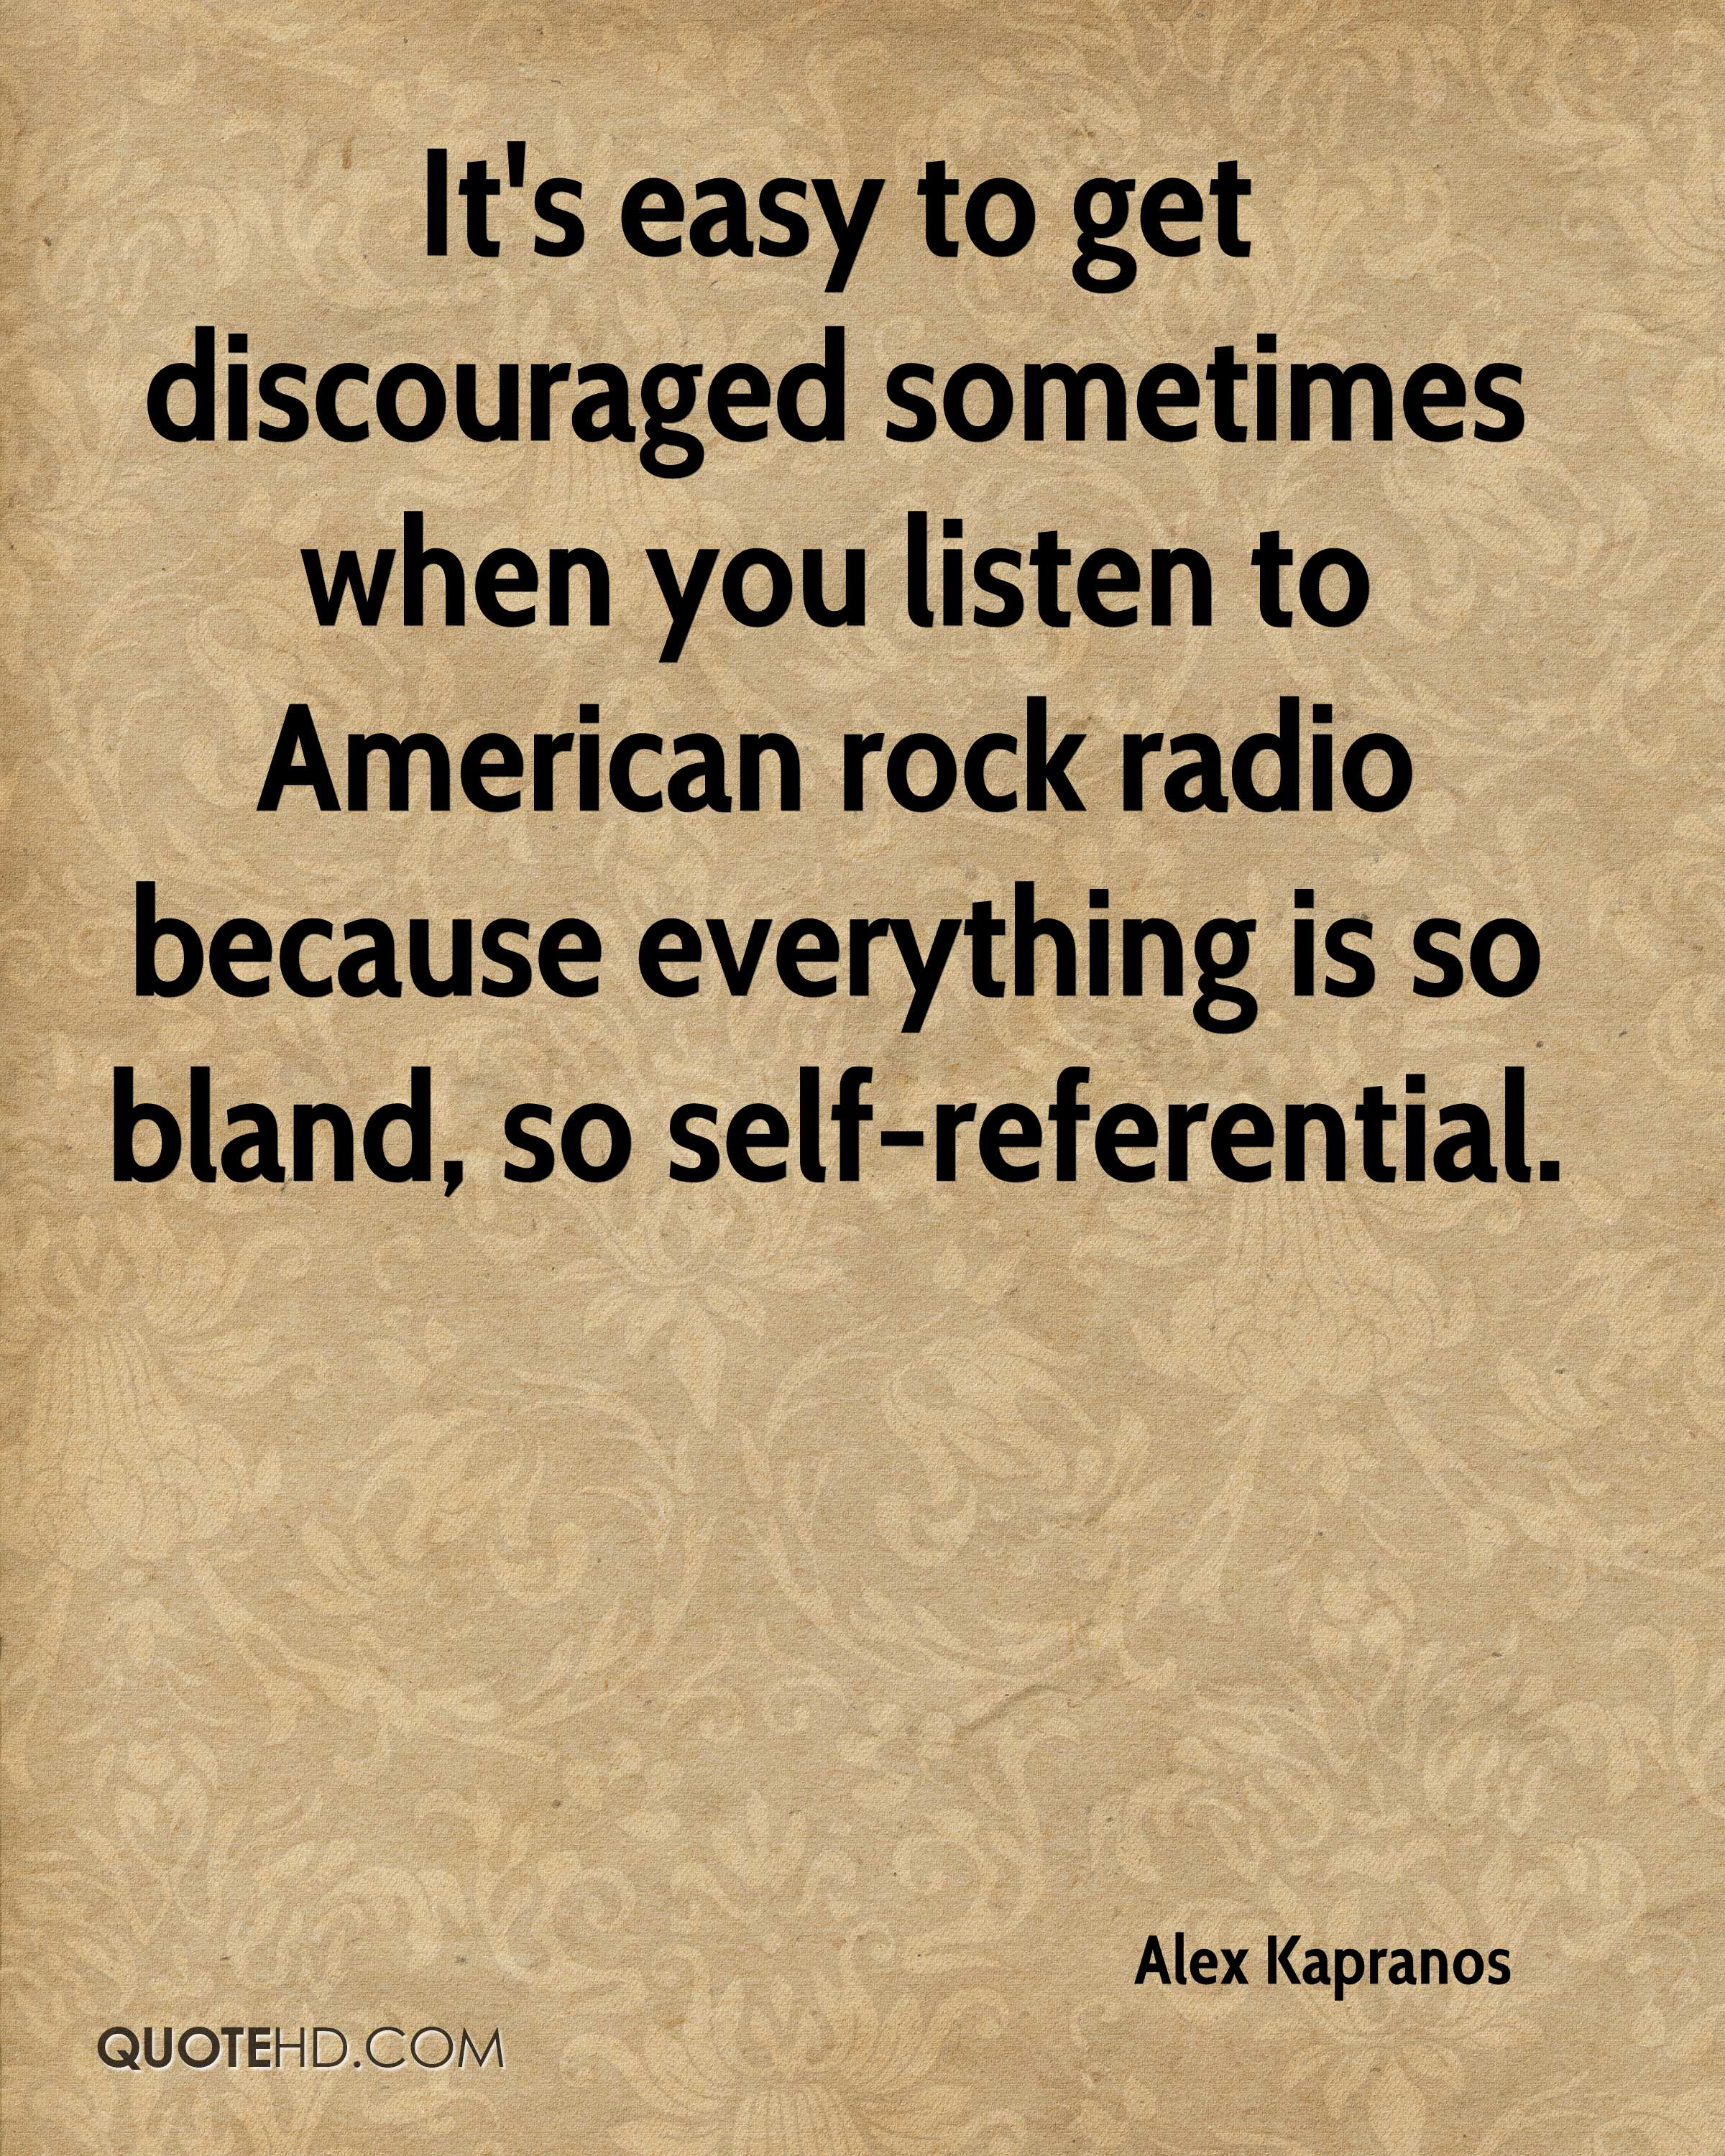 It's easy to get discouraged sometimes when you listen to American rock radio because everything is so bland, so self-referential.